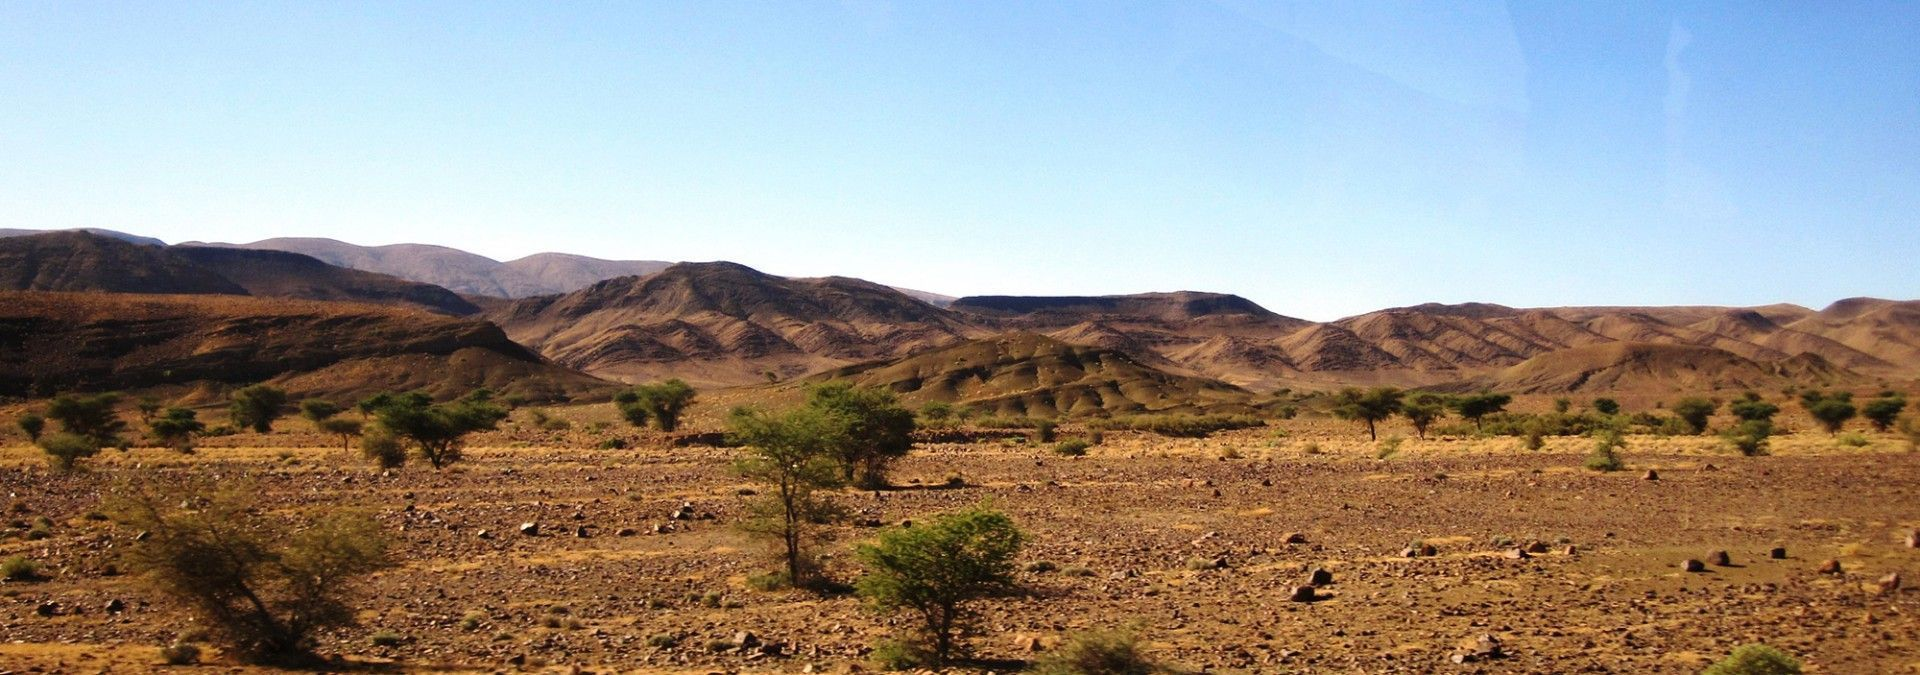 Scrubland_of_the_Sahara_Morocco.jpg